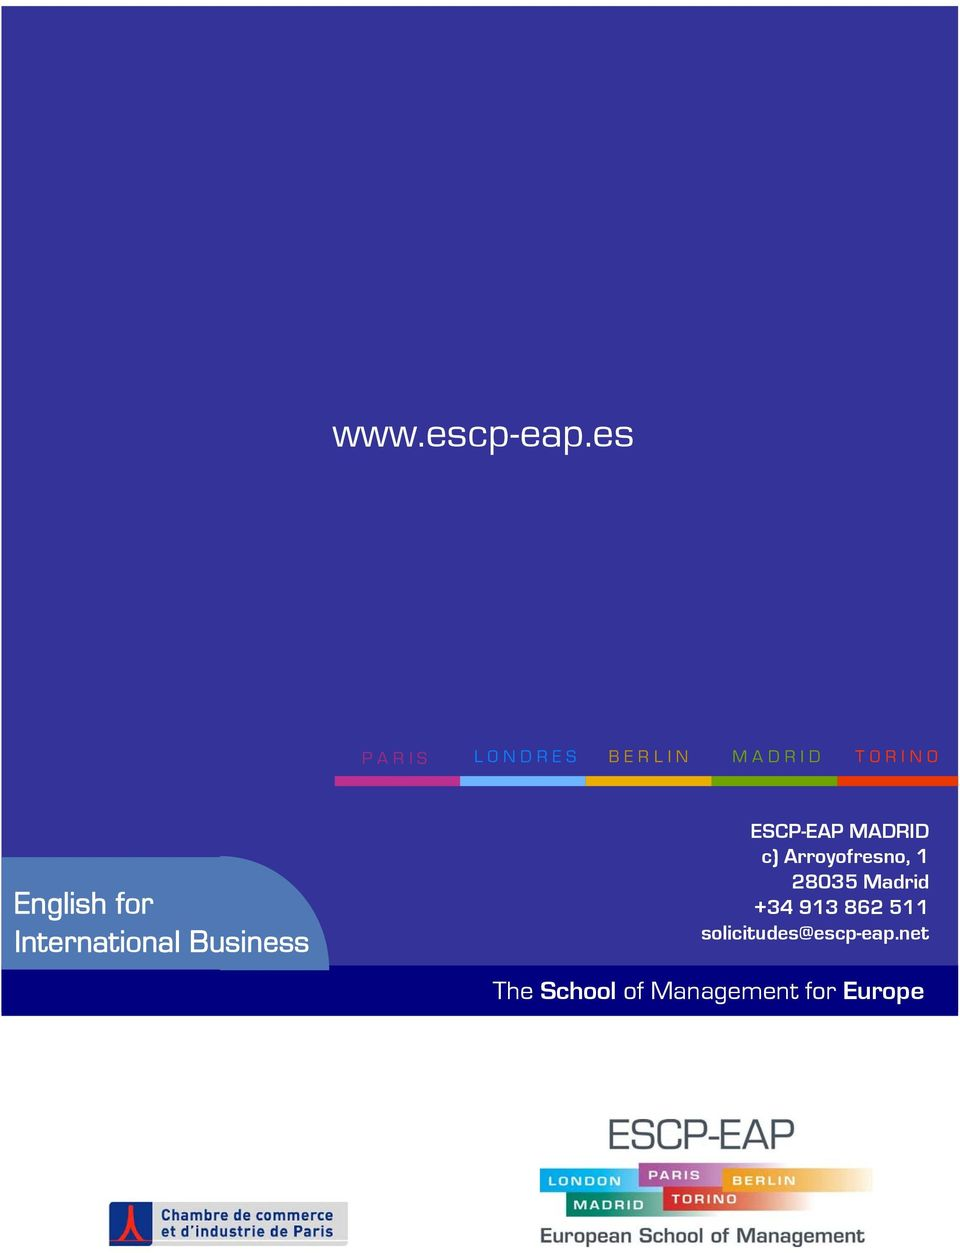 N O English for International Business ESCP-EAP MADRID c)